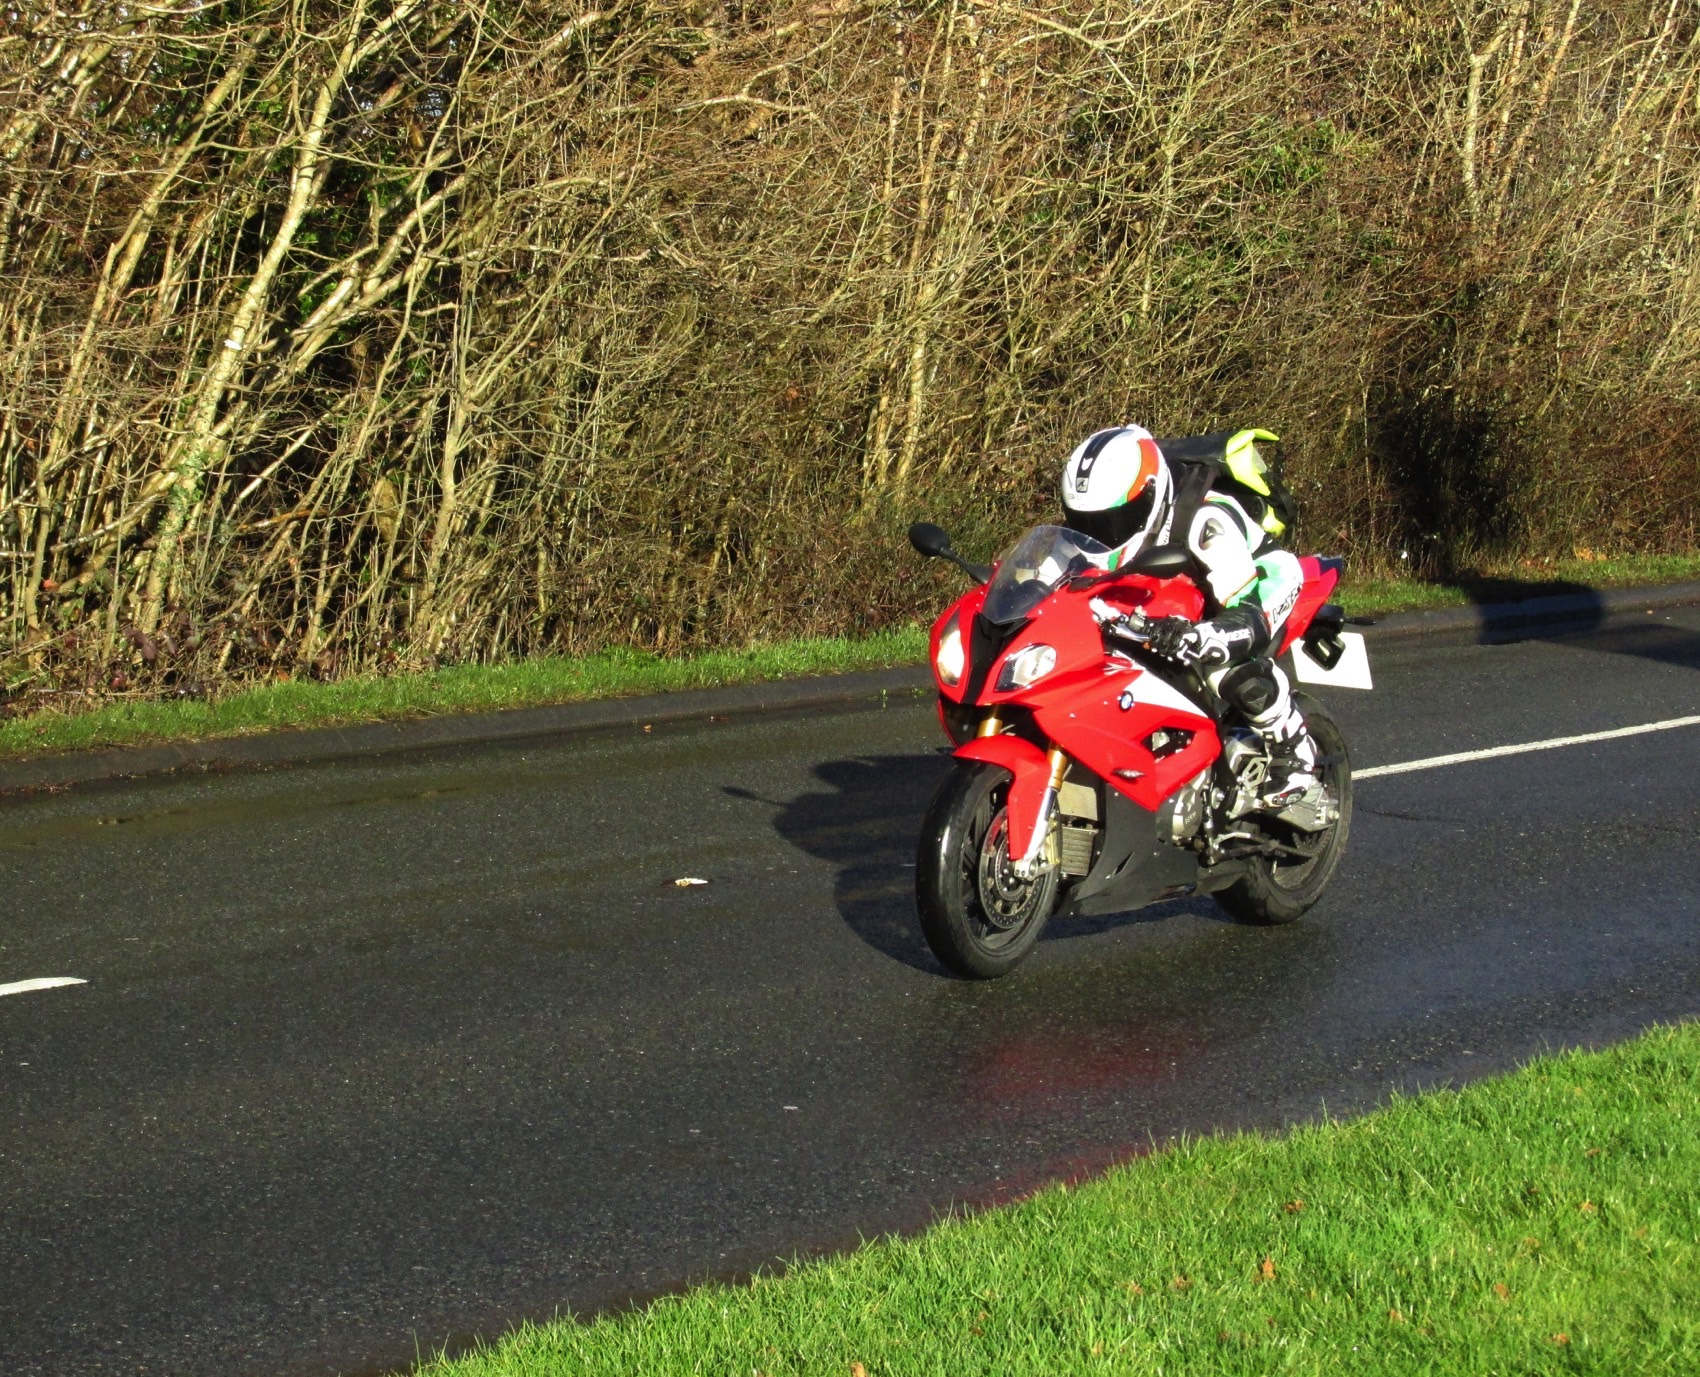 Bmw S1000rr For Sale >> First UK road test: 2015 BMW S1000RR review | Visordown